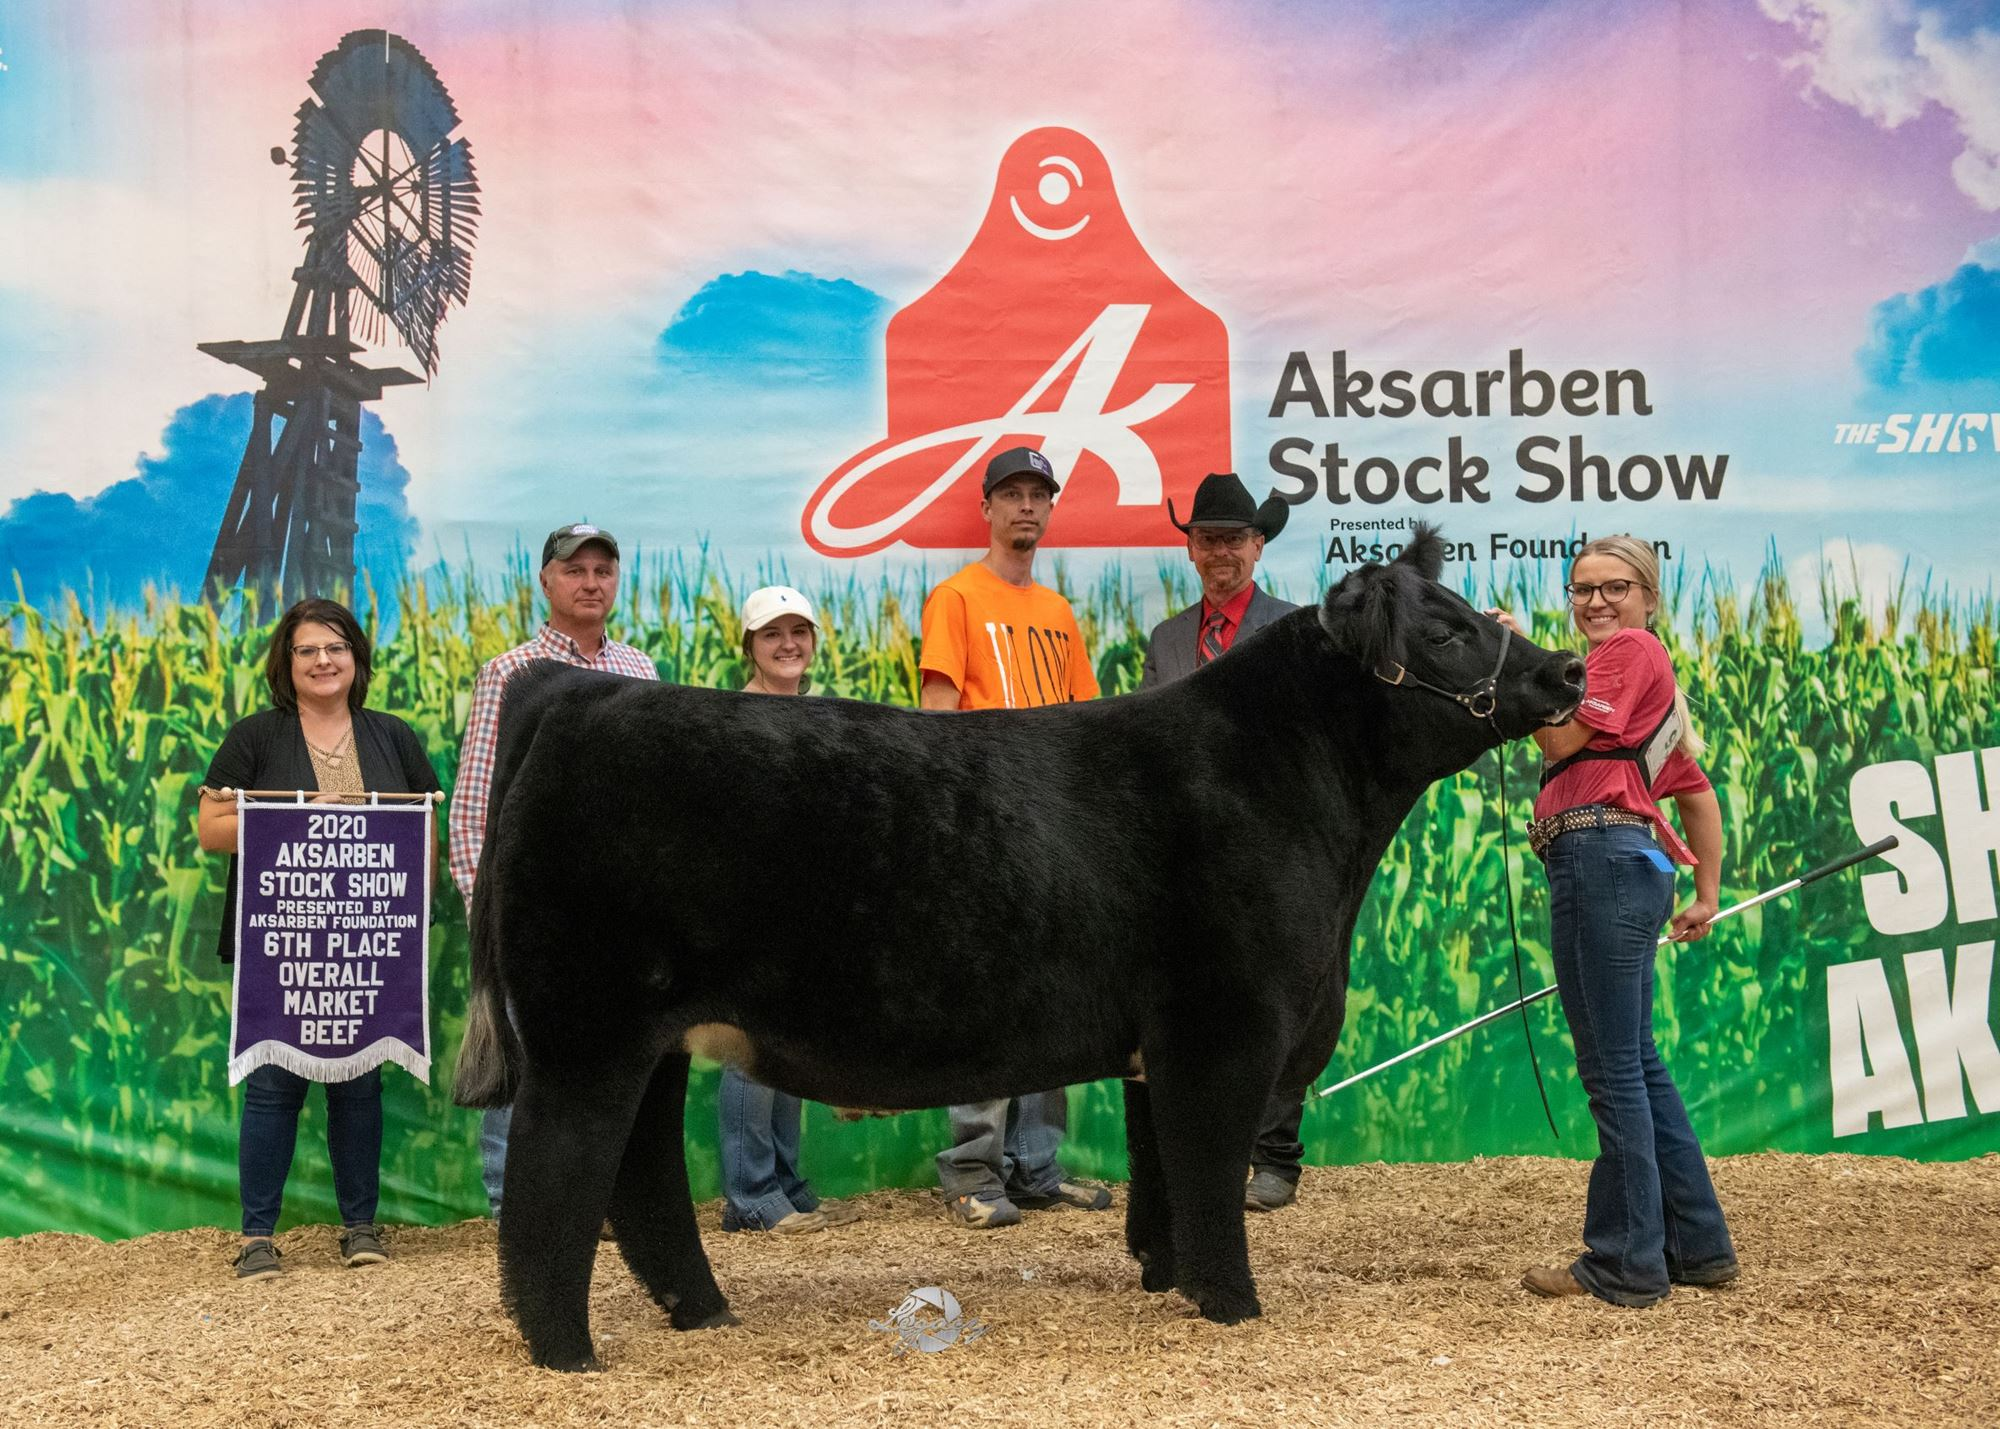 6th Overall Market Beef